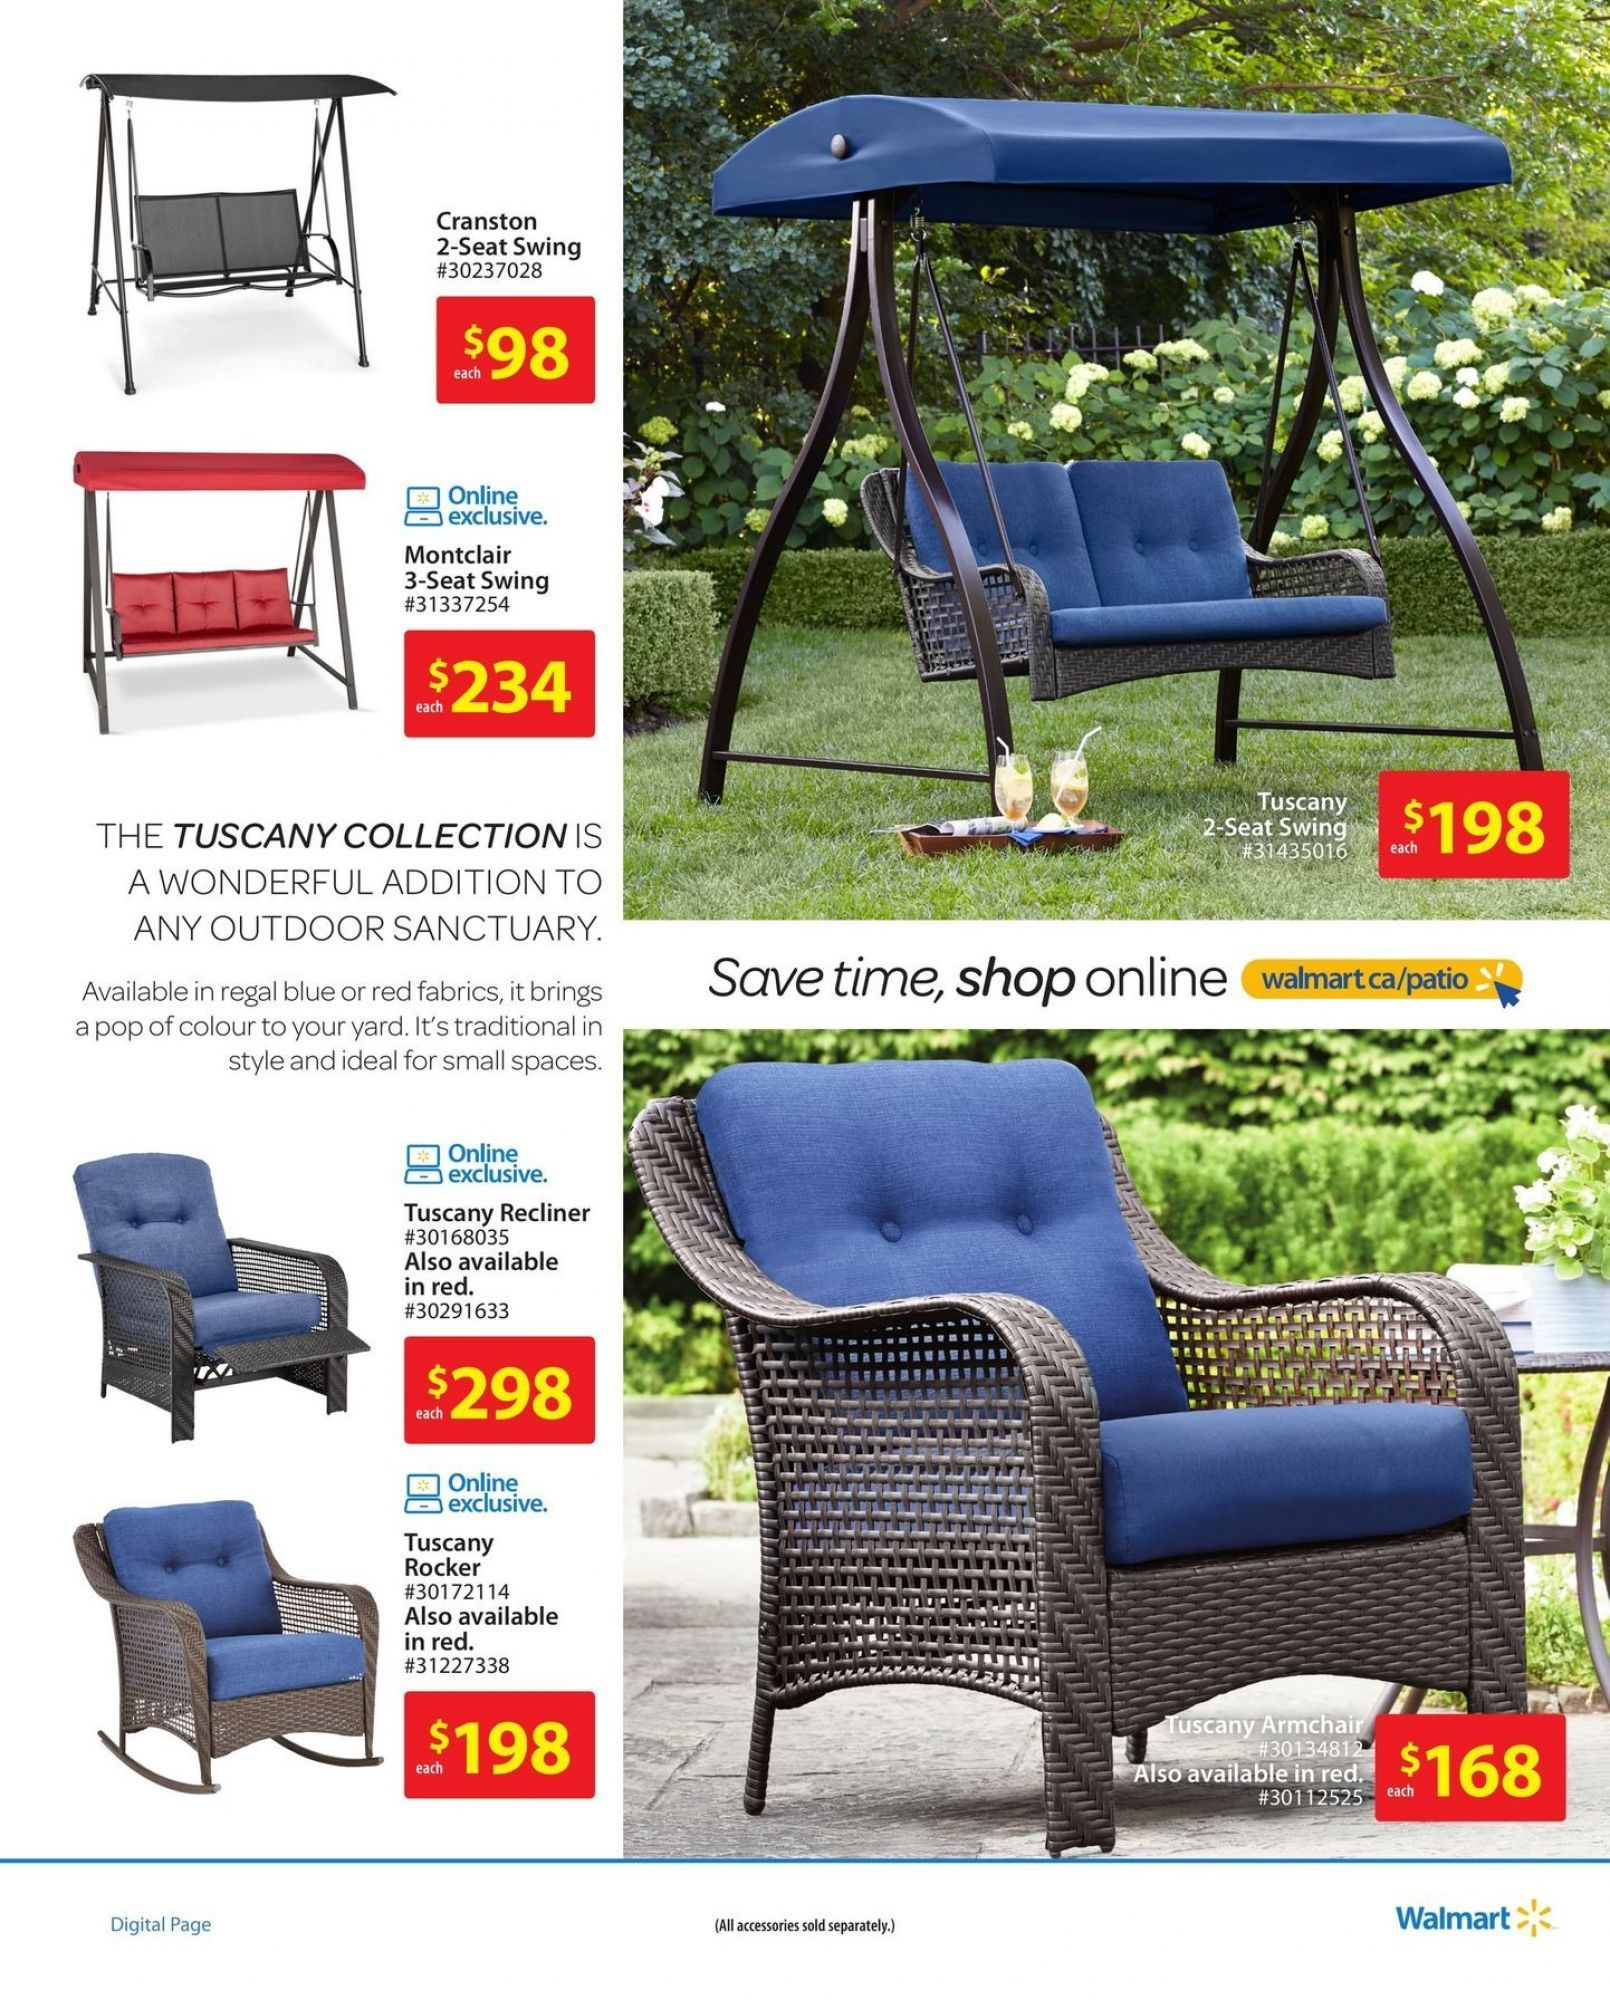 Flyer Walmart Patio Book On Canada From Thursday April 19 2018 To Wednesday June 20 2018 Flyer Walmart Outdoor Decor